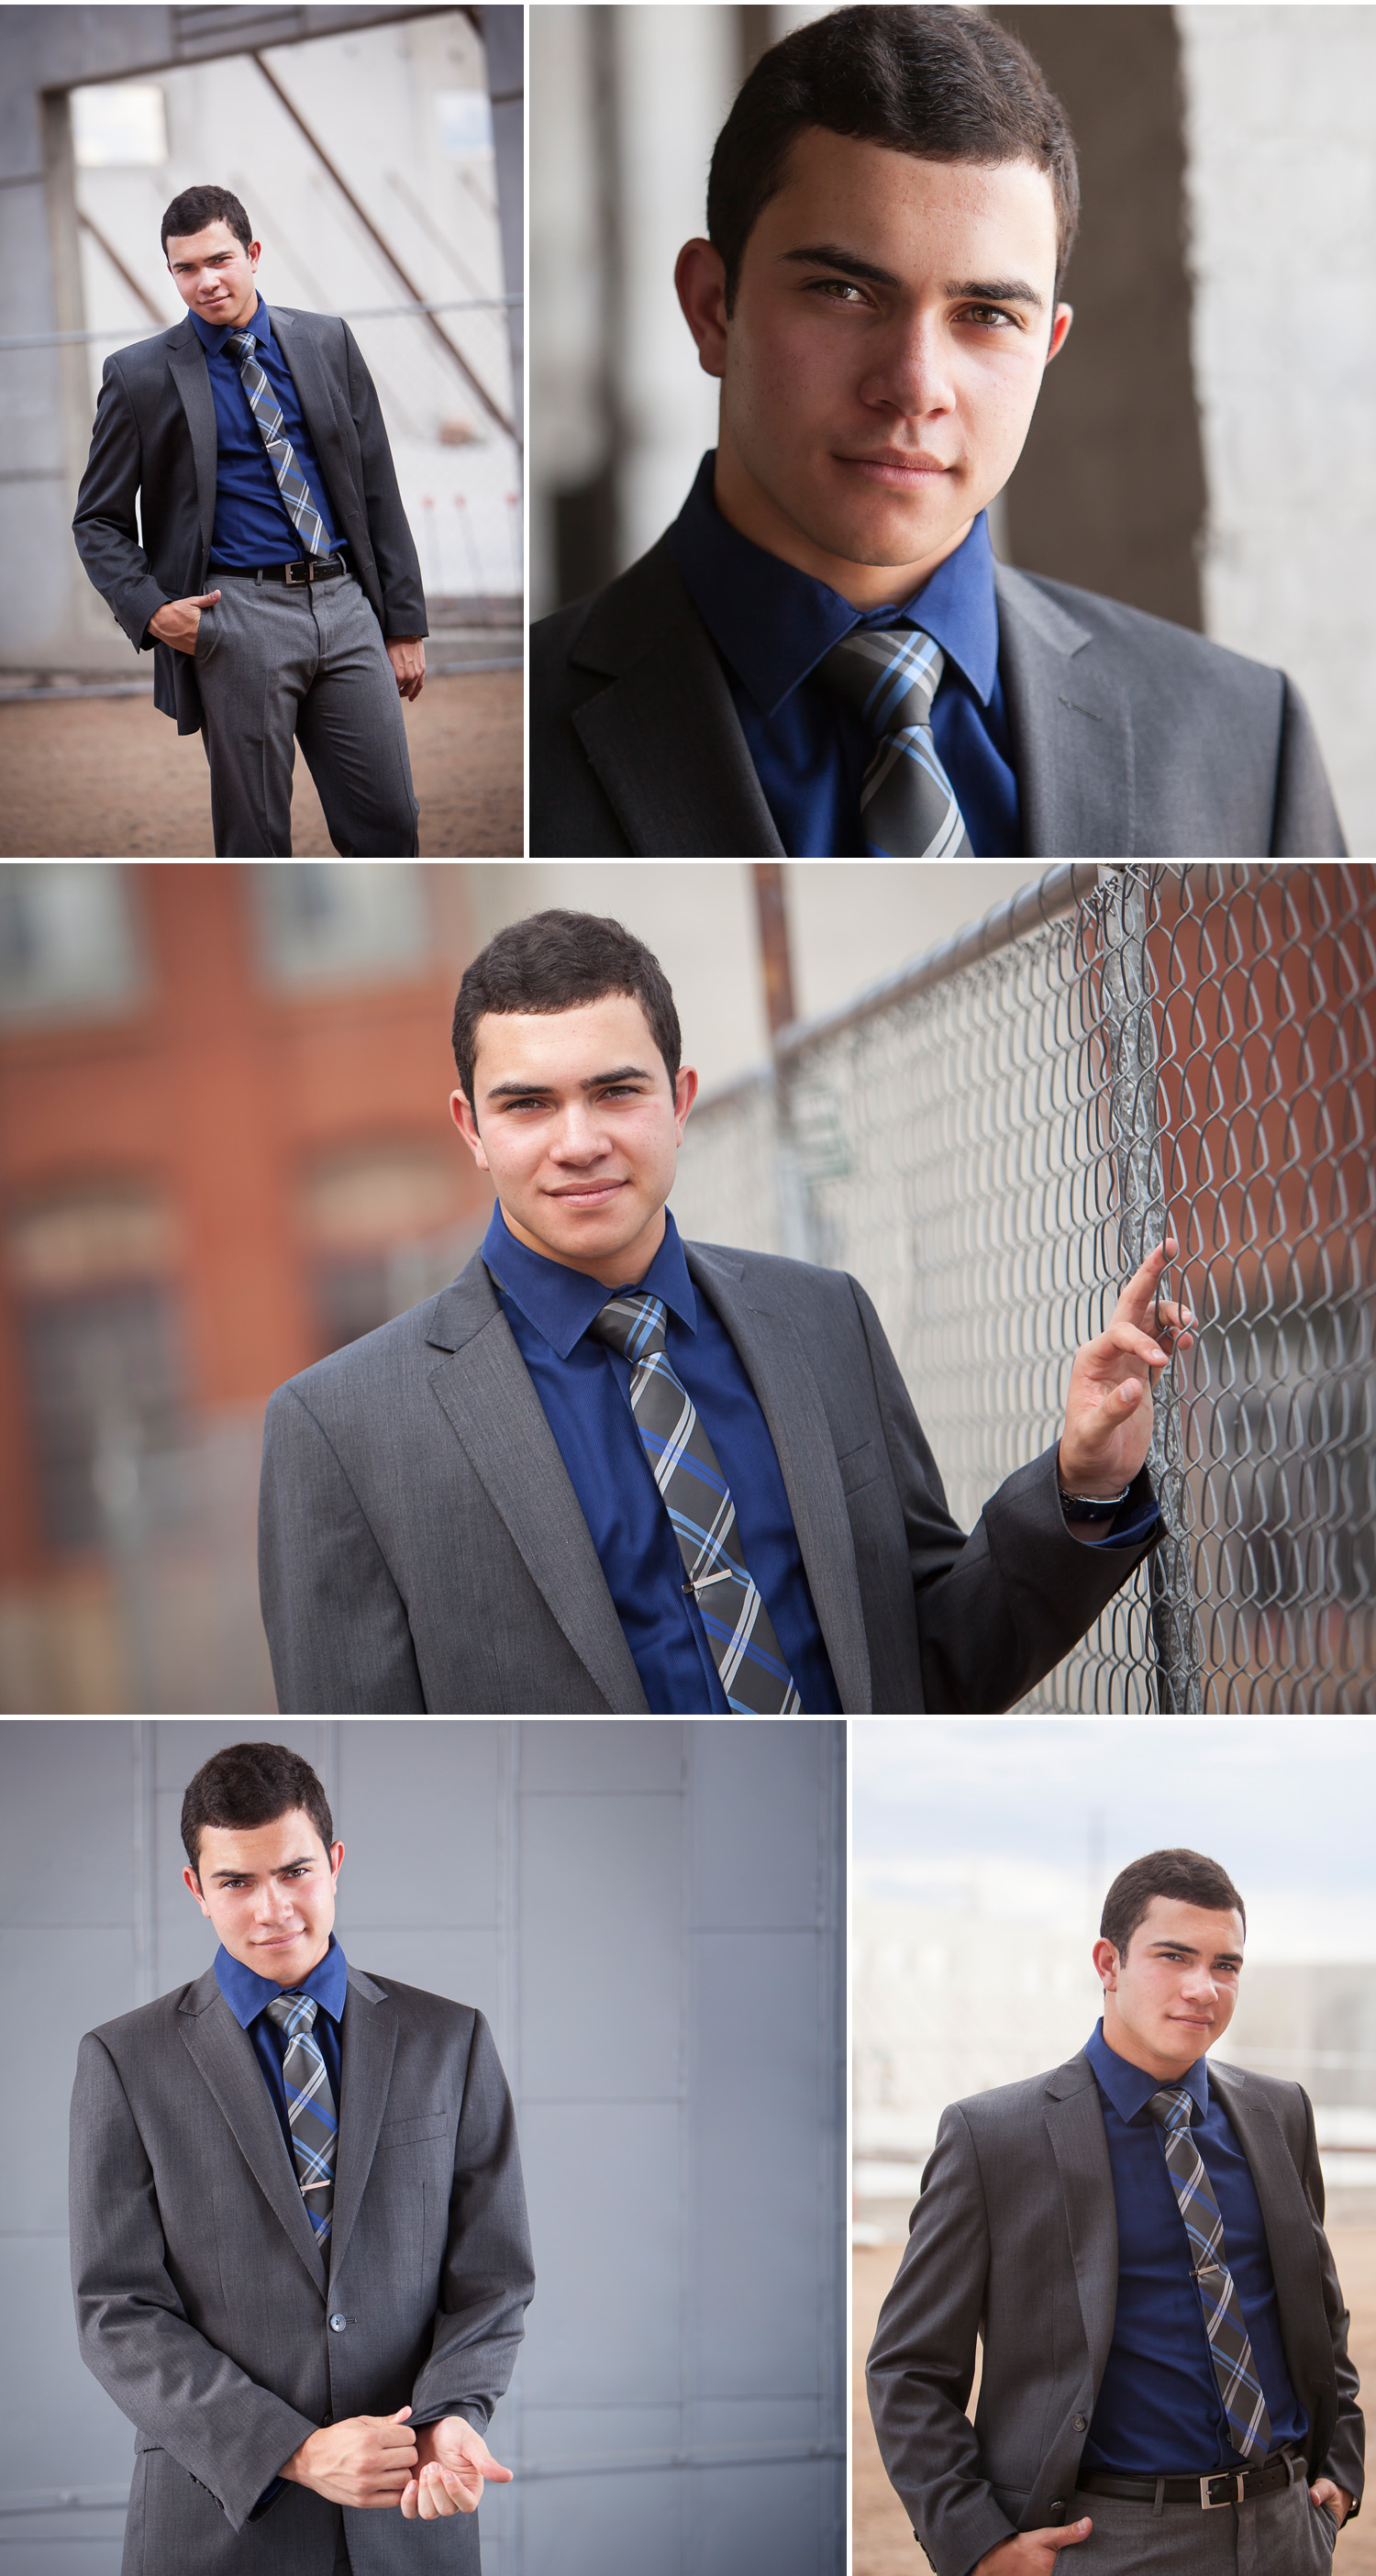 Senior Portraits of guy in suit on industrial campus, with Denver photographer Jennifer Koskinen of Merritt Portrait Studio